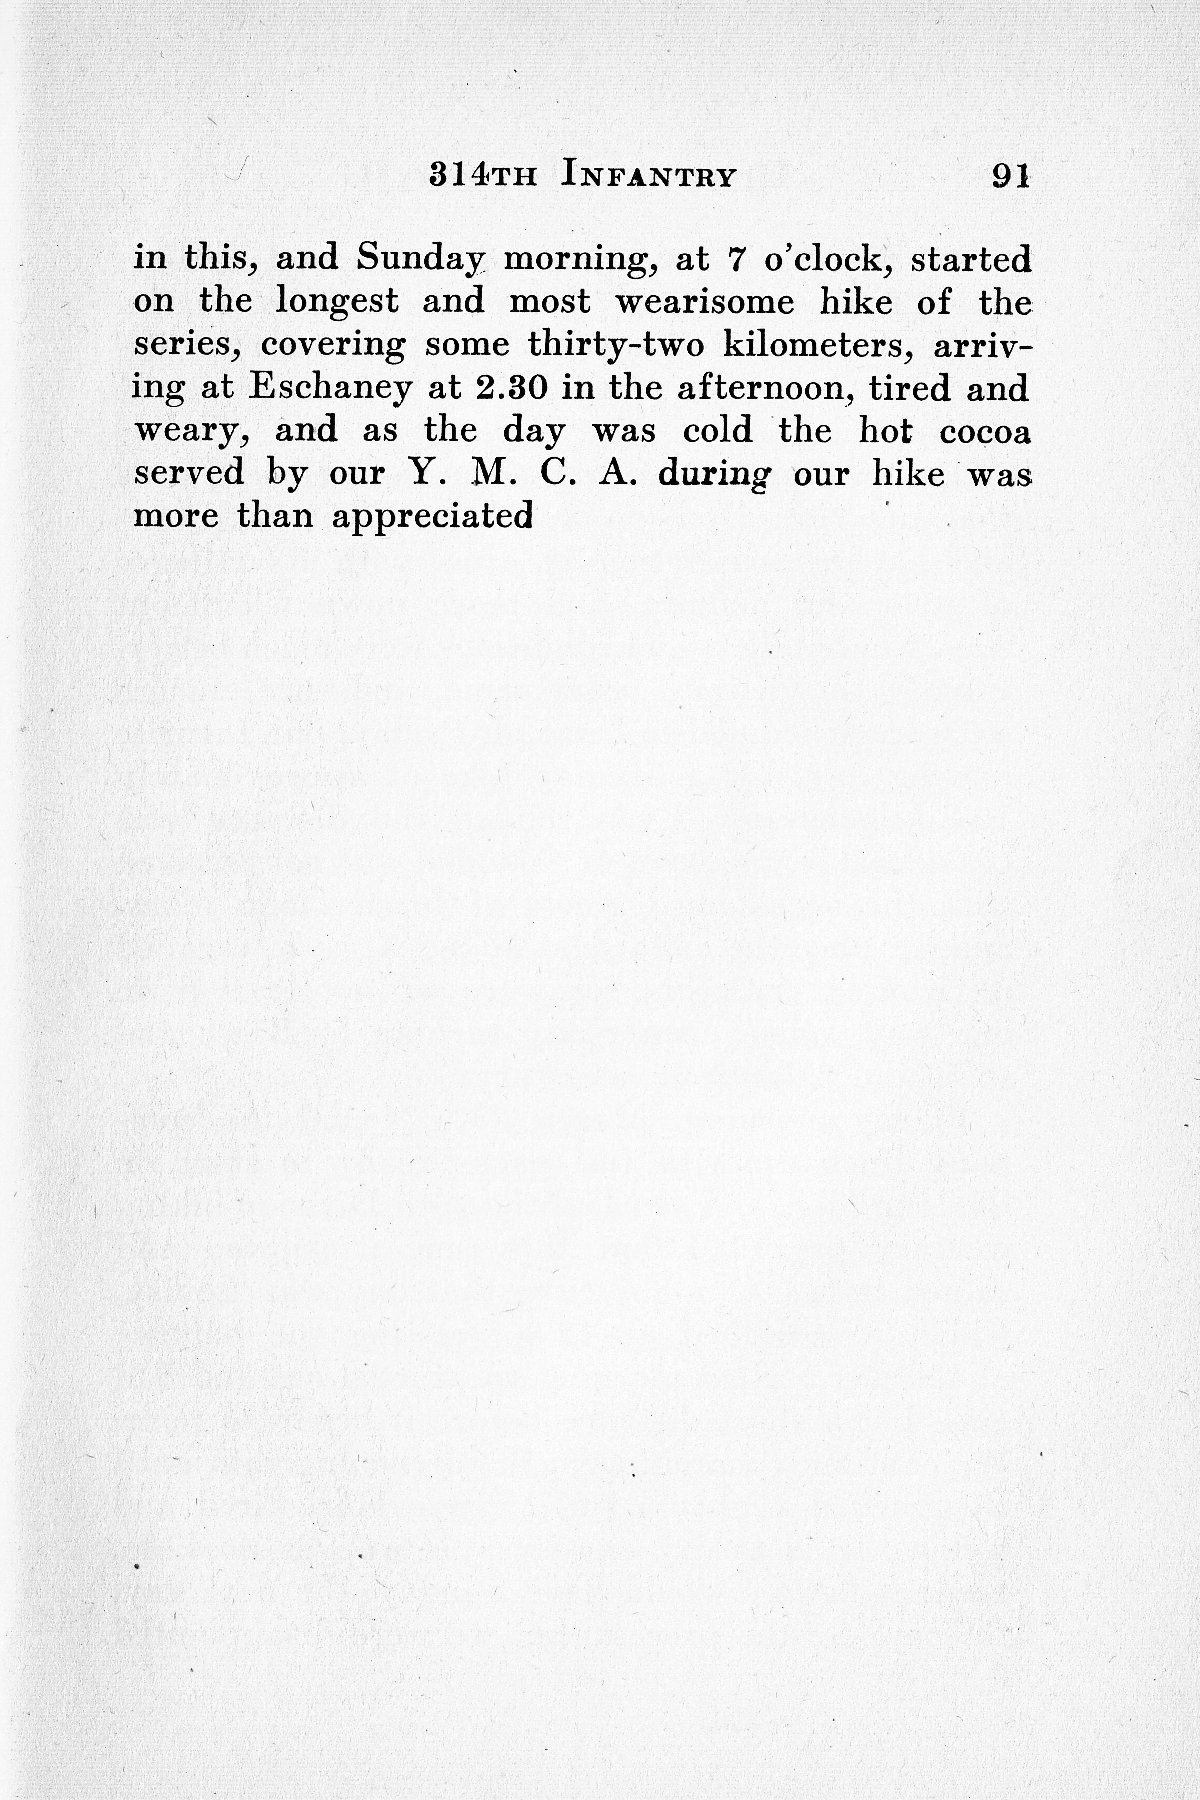 History of Company G 314th Infanty - Page 091